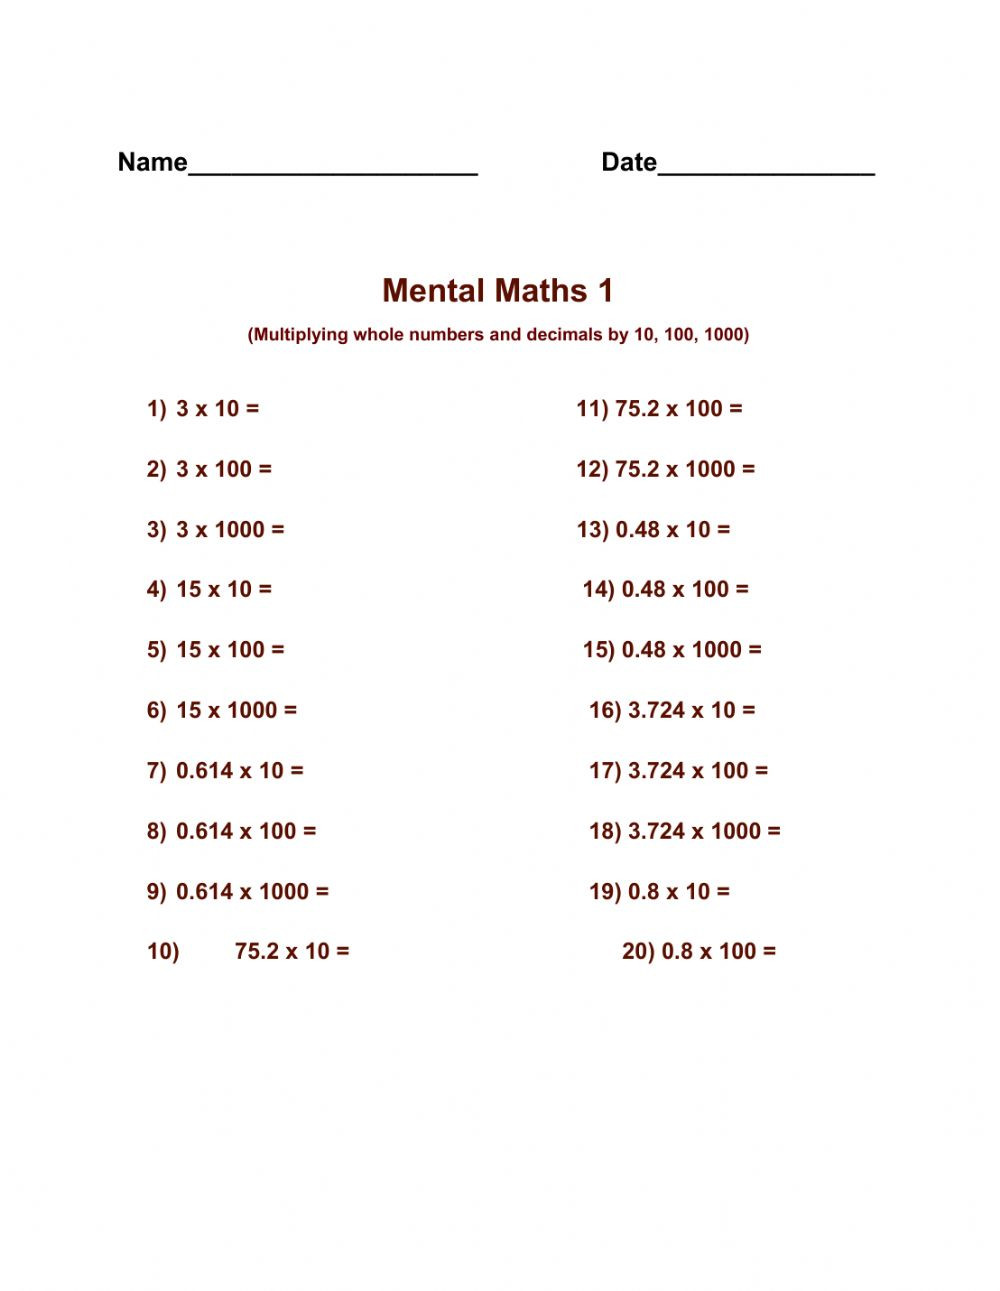 Mental Math Multiplication Worksheets Mental Maths 1 Interactive Worksheet